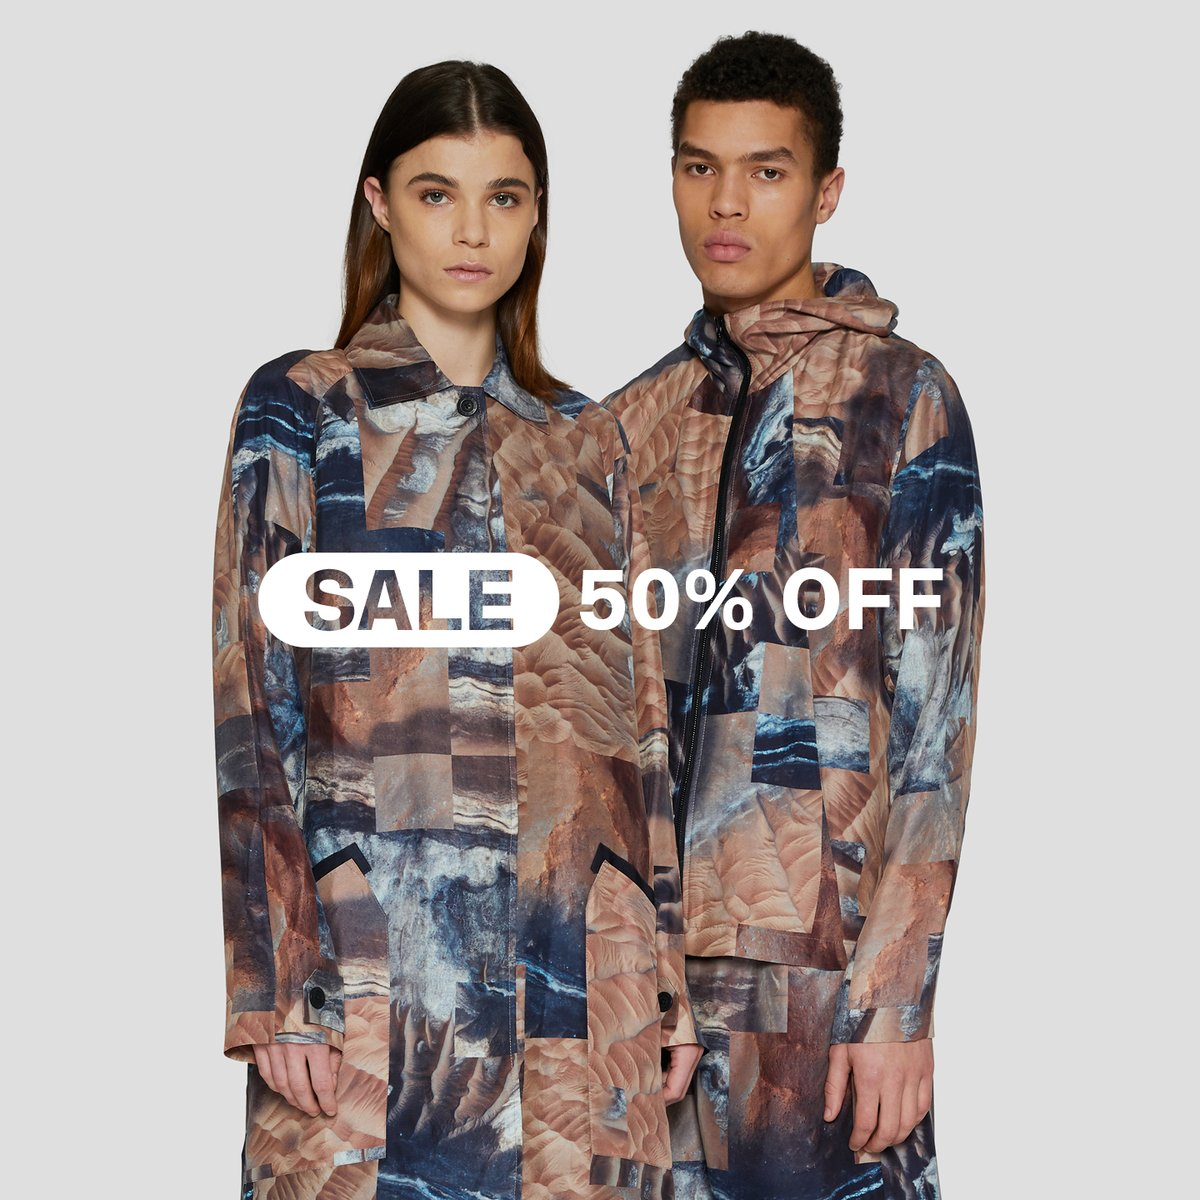 Make the most of 50% OFF selected lines from Spring/Summer 2020 and past collections. Available online and in the RÆBURN Lab while stocks last.  https://t.co/Ljb69w7AjW https://t.co/dJHq87jJZ8